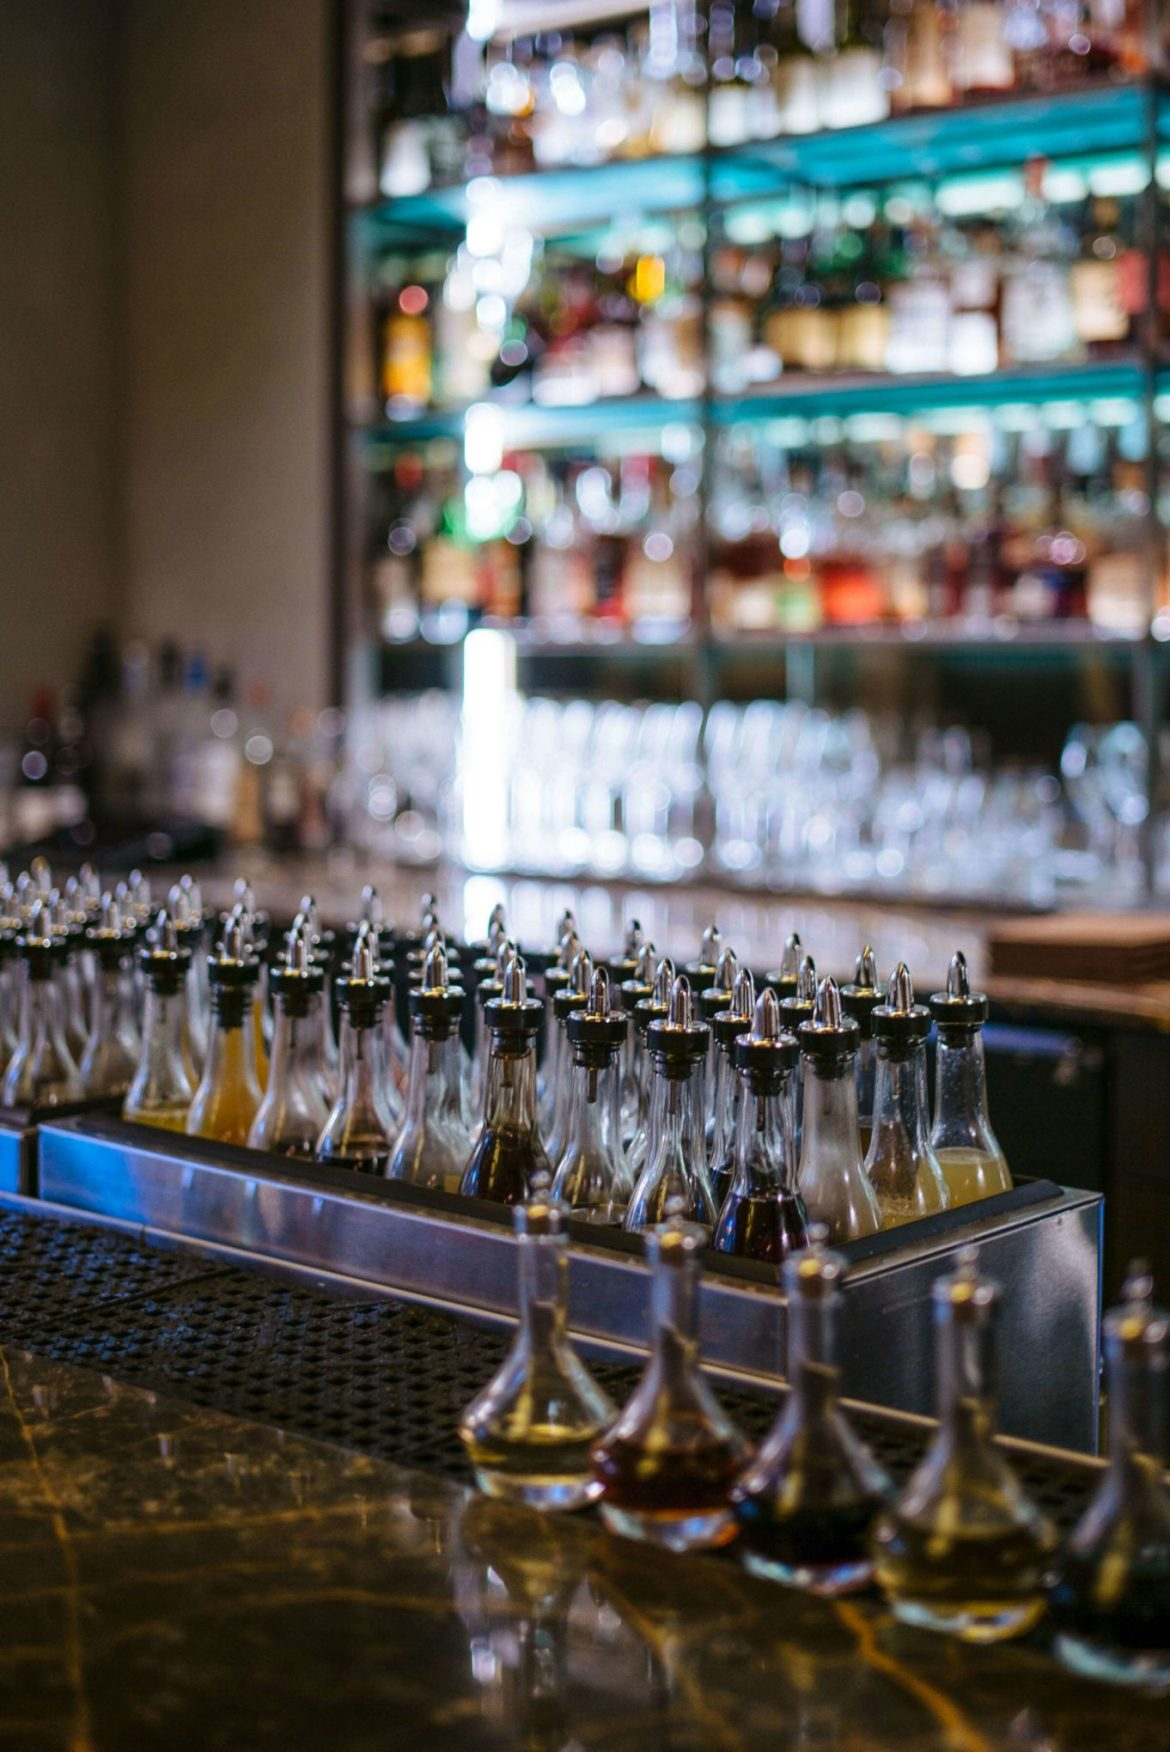 The bar at Eleven Madison Park in New York City has a new bar filled with all of the syrups, shrubs, and liquors needed for amazing cocktails, The Taste Edit